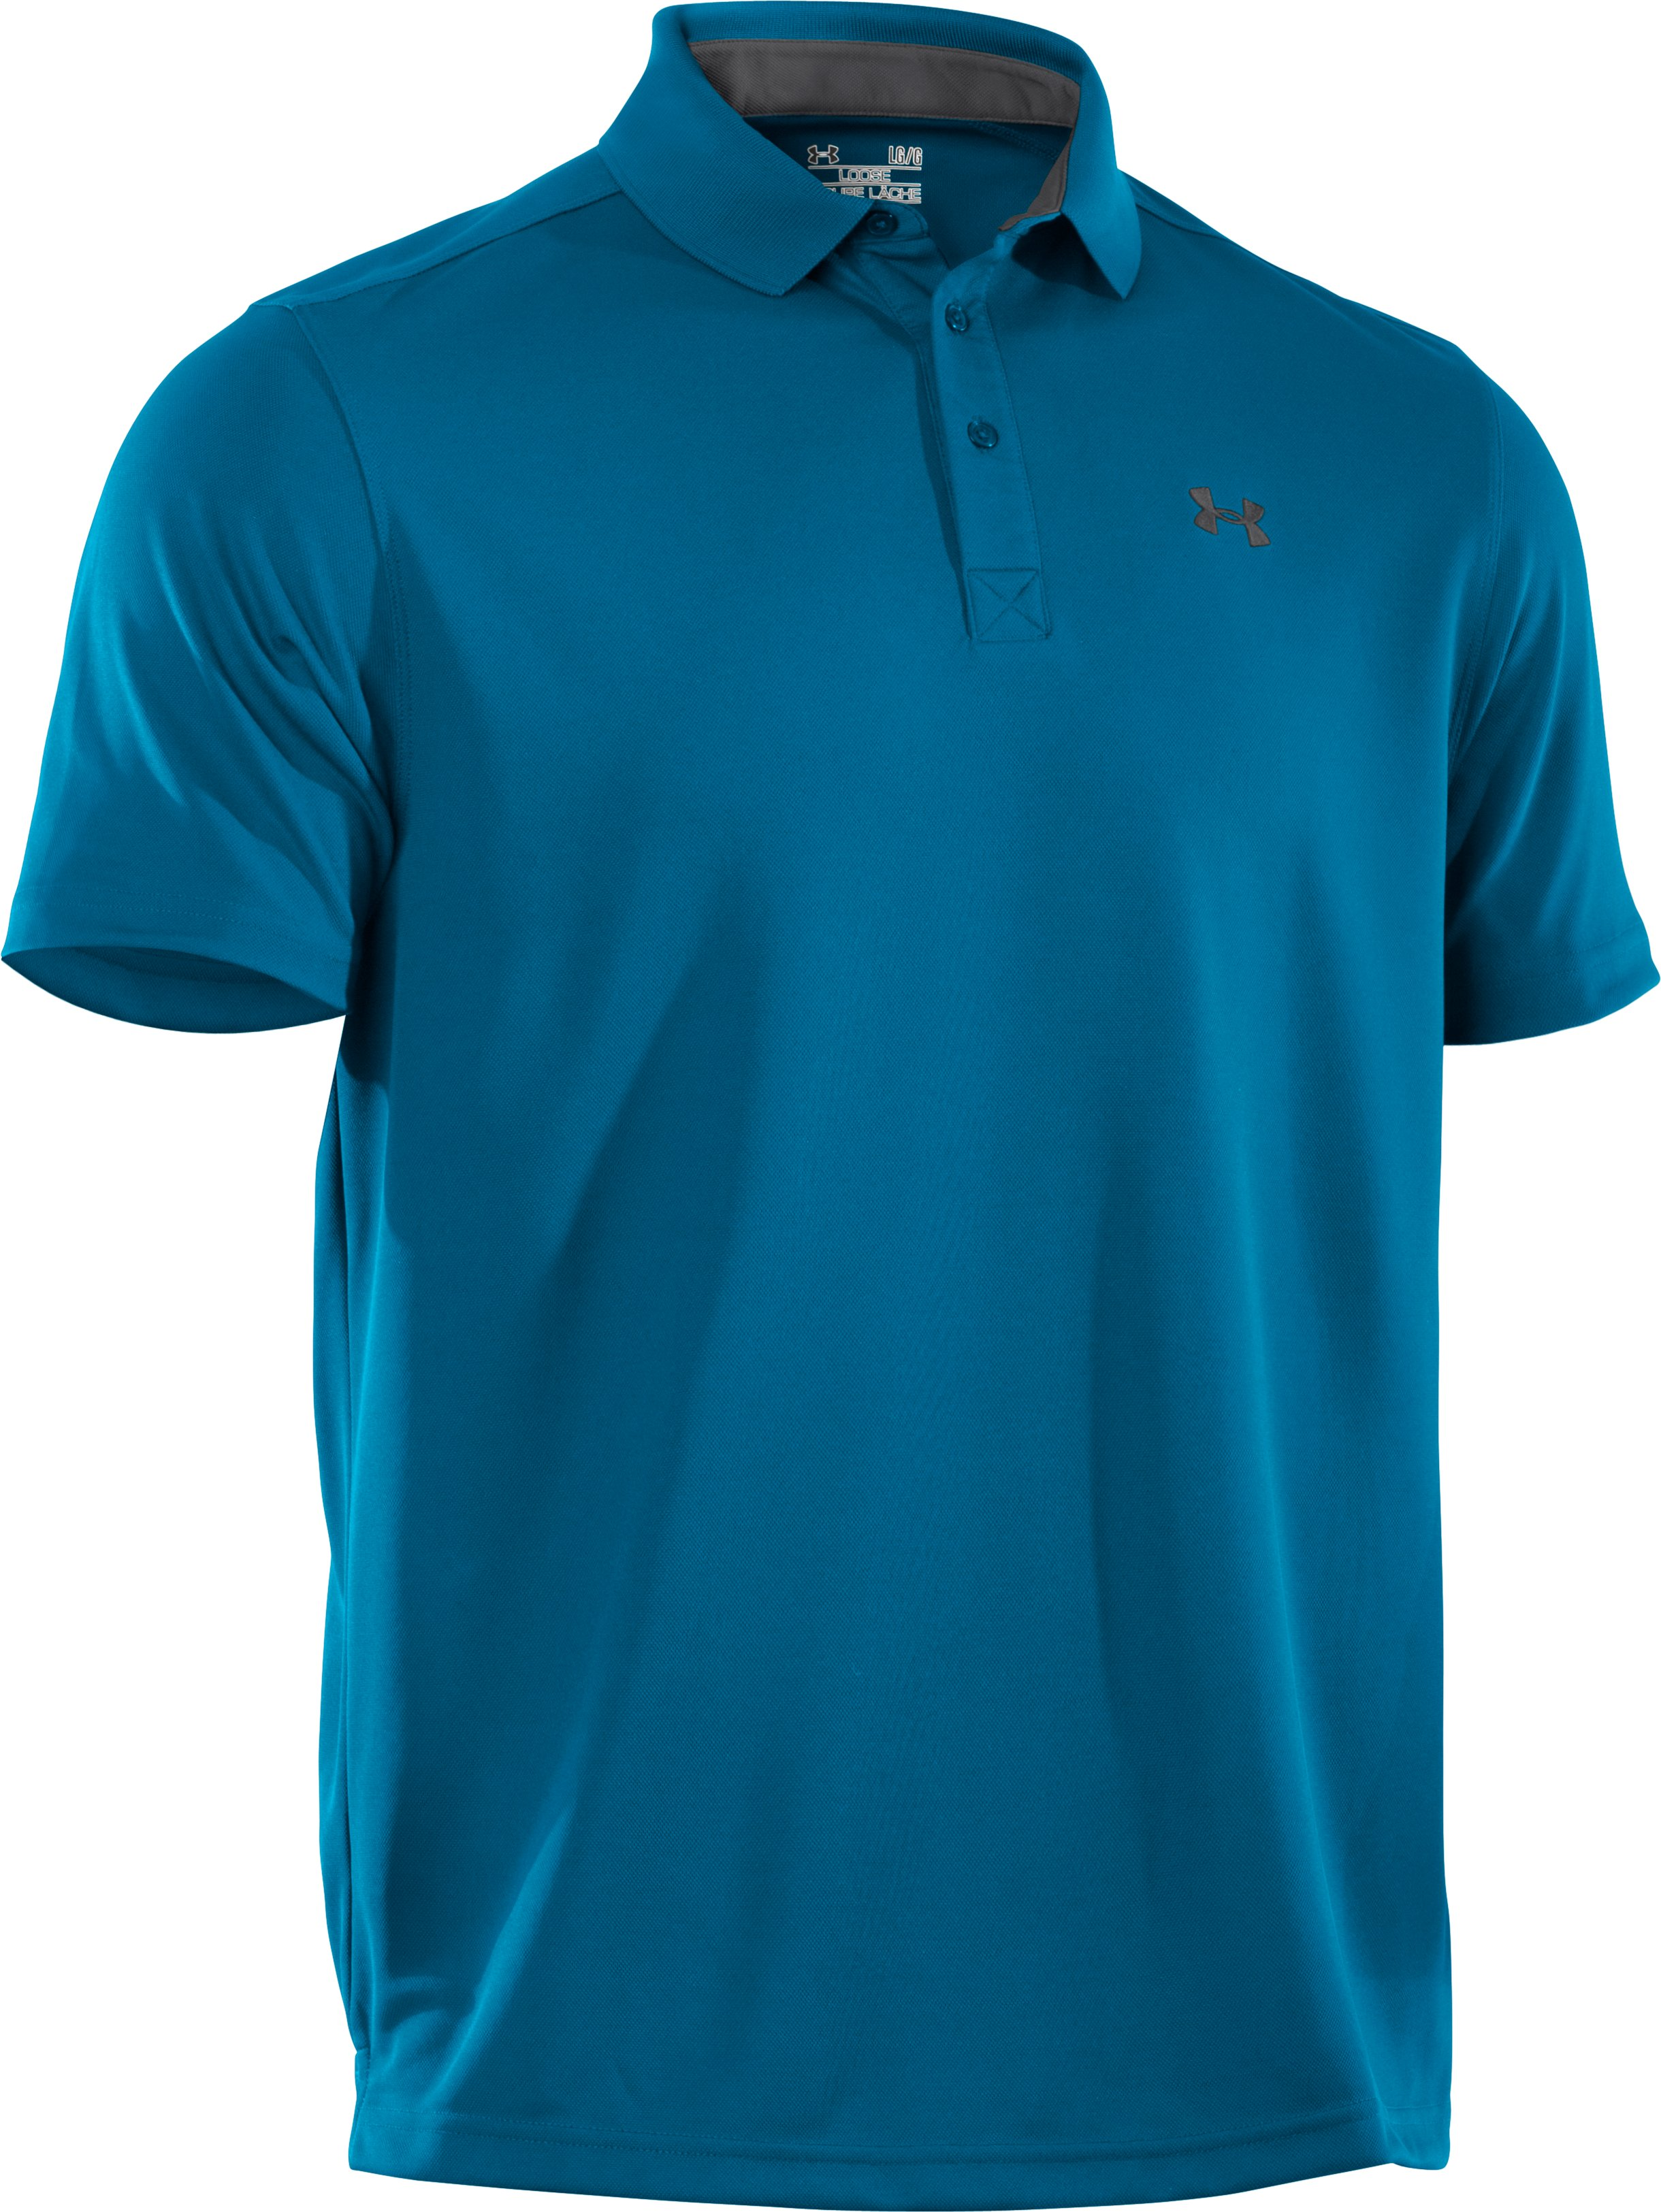 Men's UA Fade Solid Pique Polo 3.0, SNORKEL